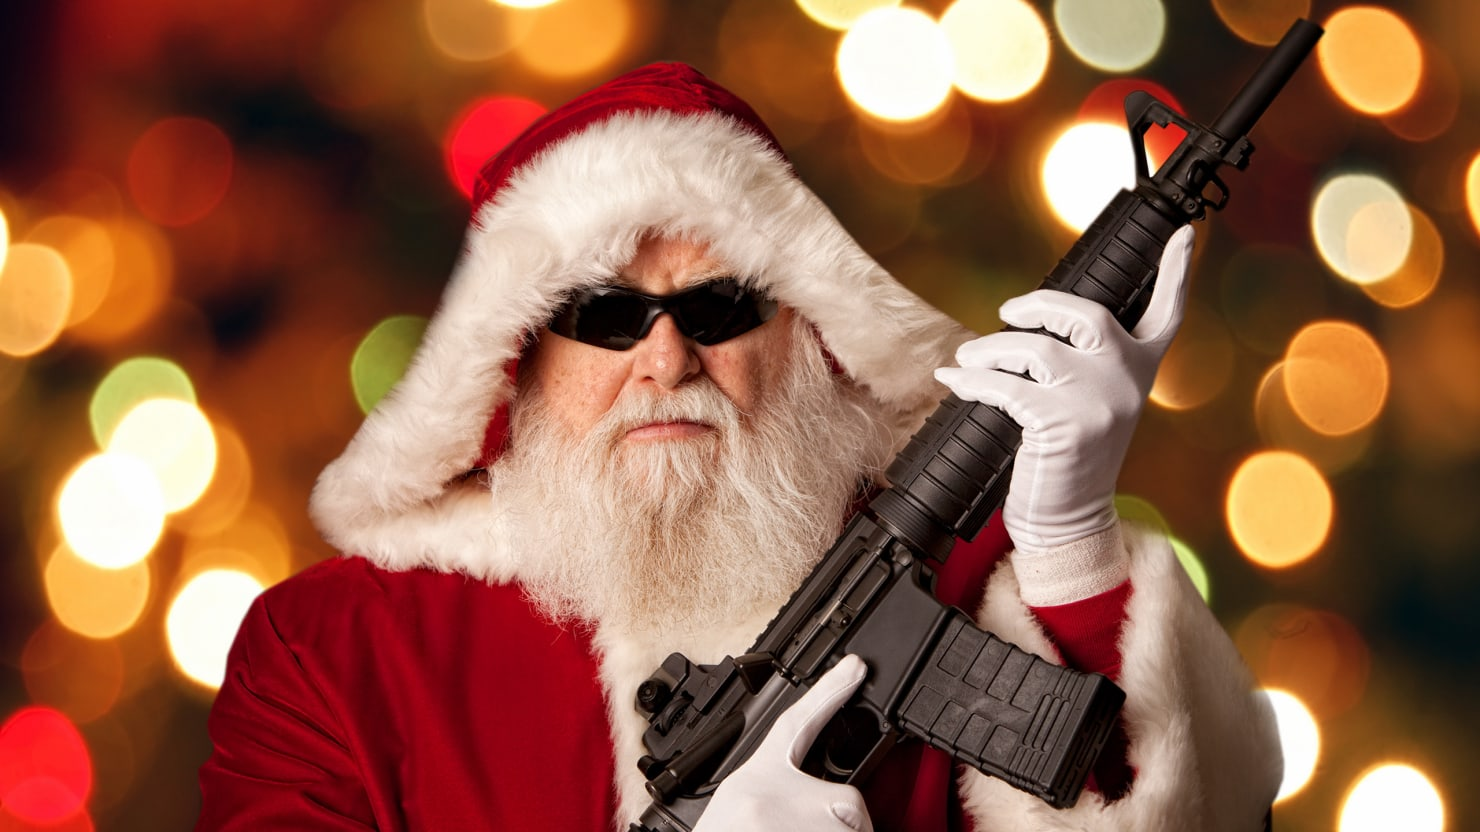 The NRA's Twisted List for Santa